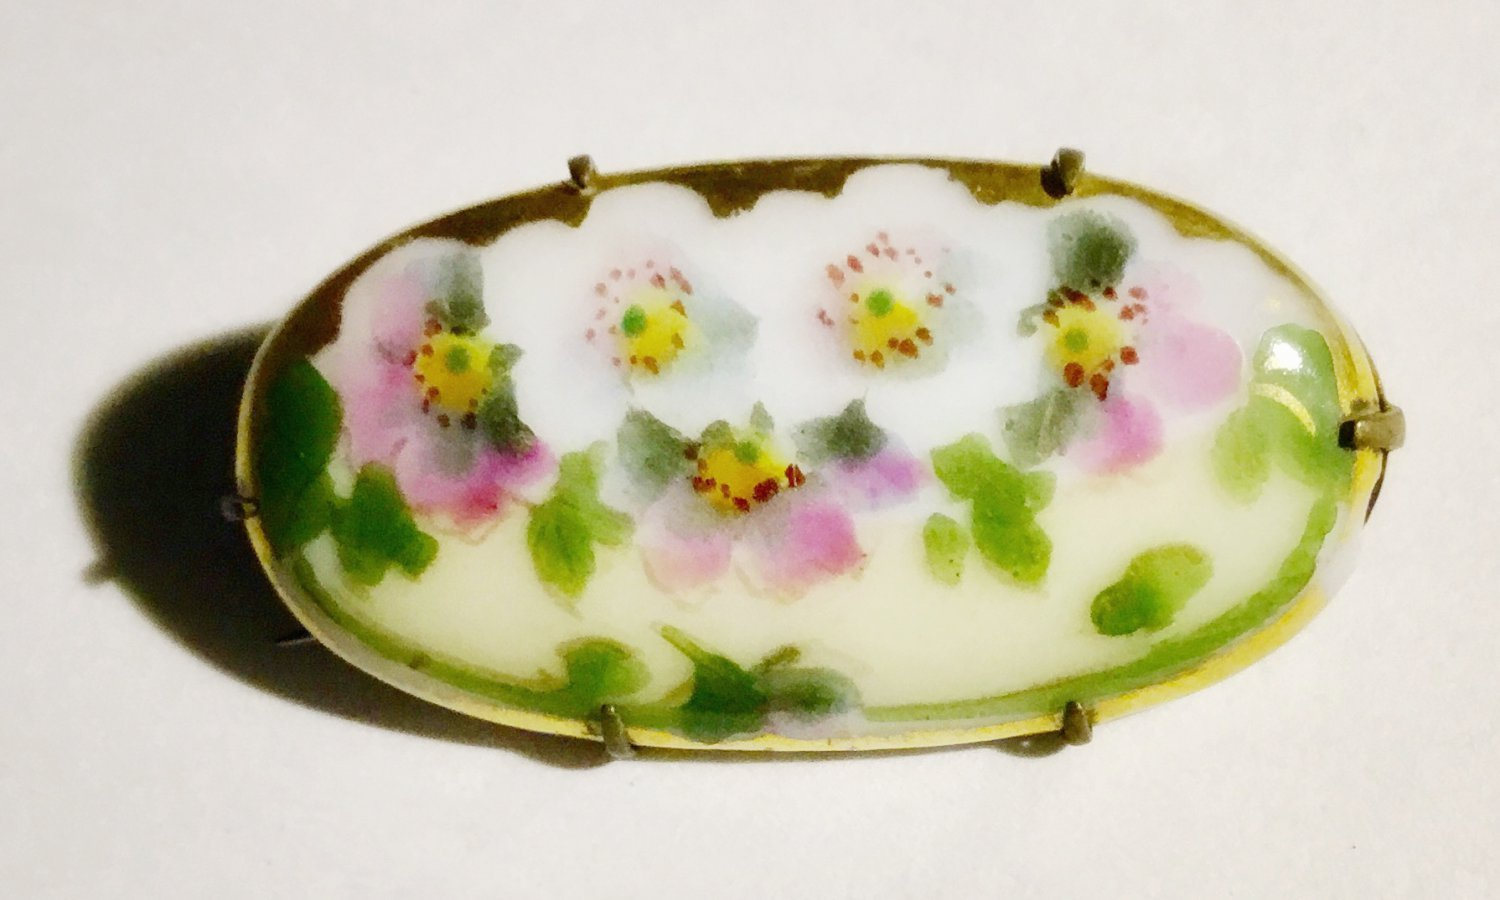 Apple Blossoms Handpainted Porcelain Antique Brooch - Free USA